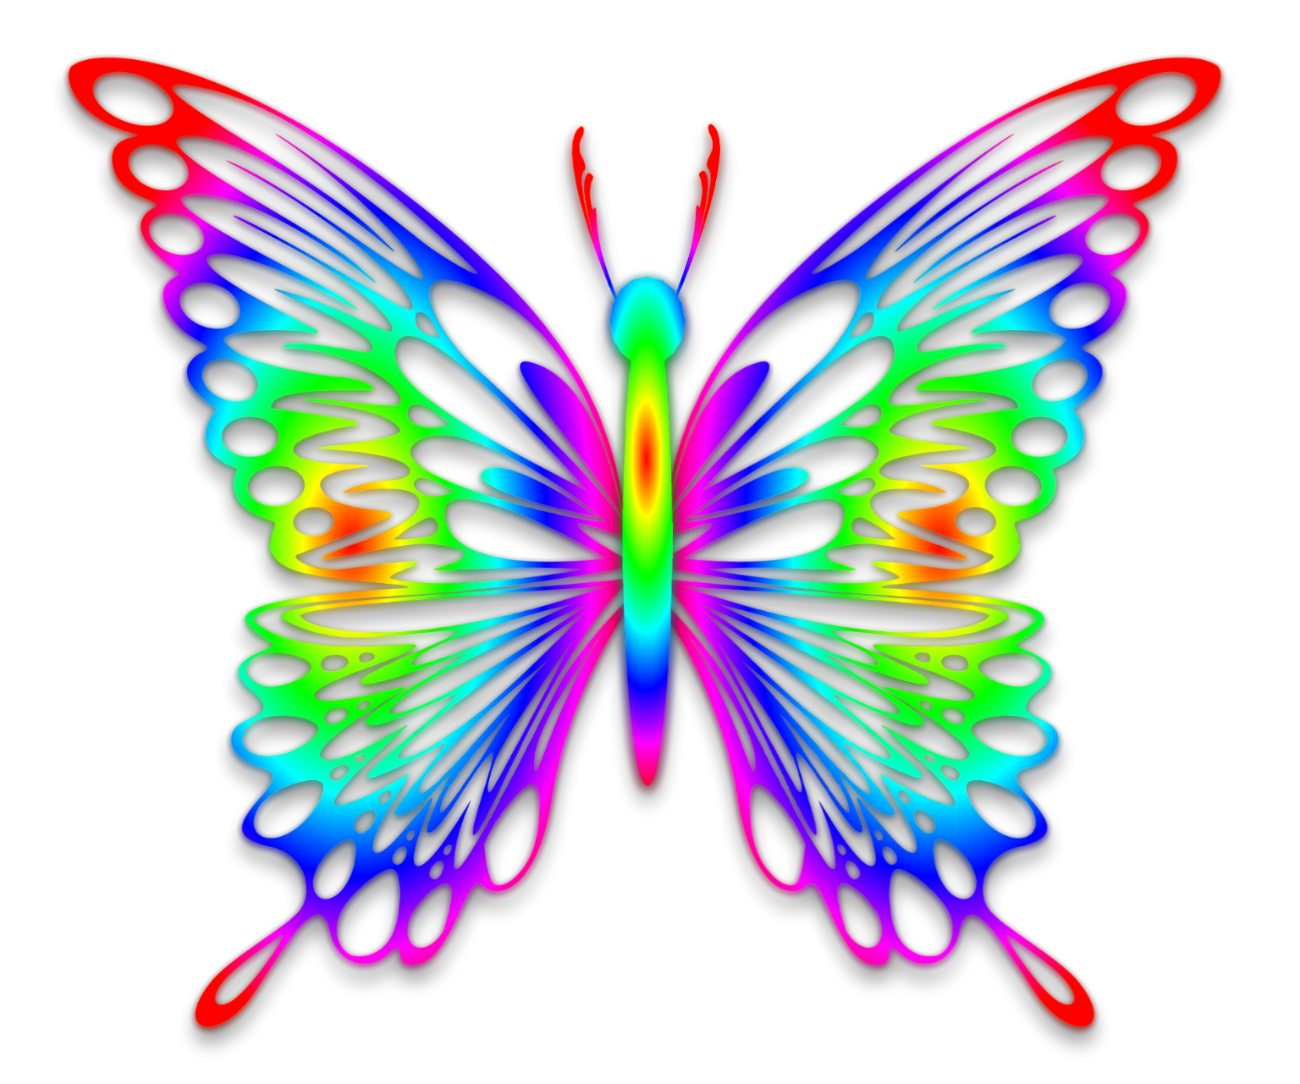 Rainbow Butterfly by GautamDas1992 on DeviantArt